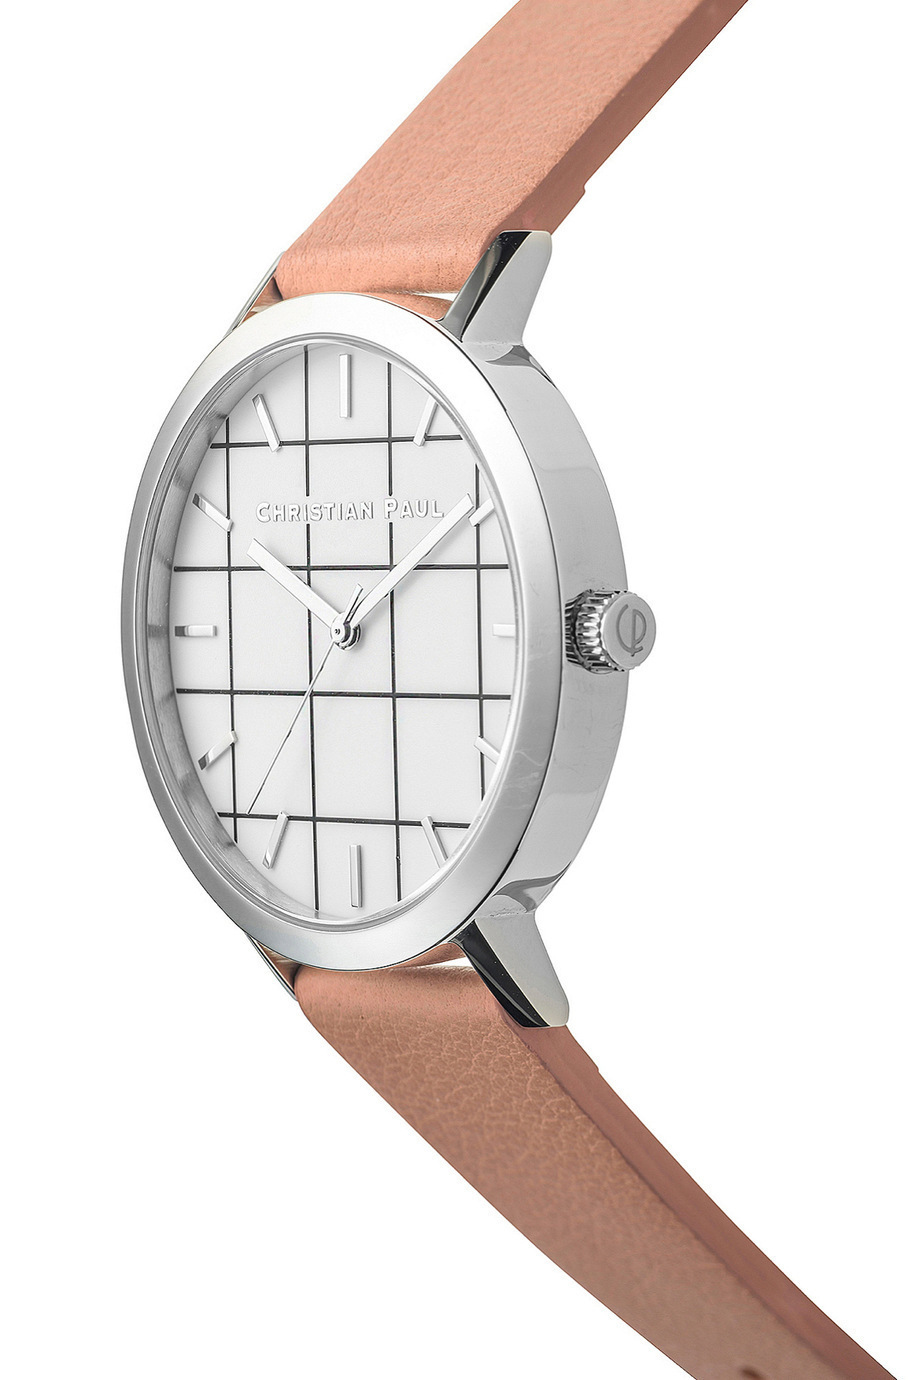 christian paul gr 04 grid collection airlie